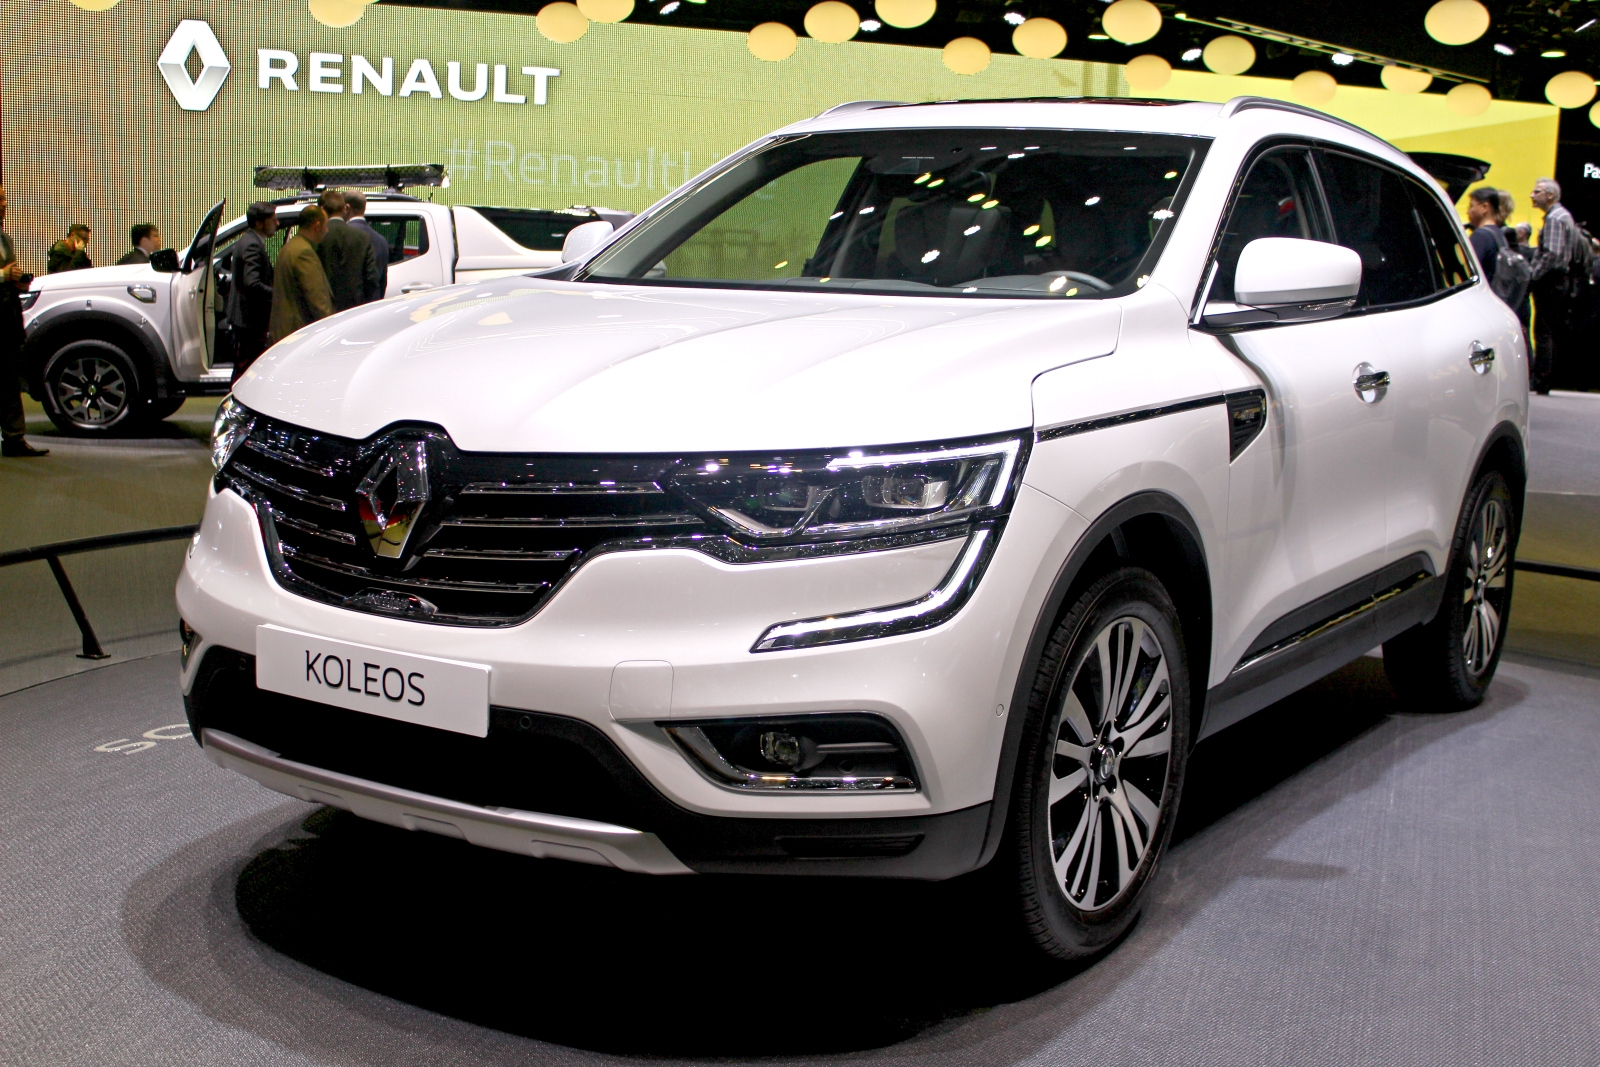 renault koleos deuxi me tentative vid o en direct du. Black Bedroom Furniture Sets. Home Design Ideas